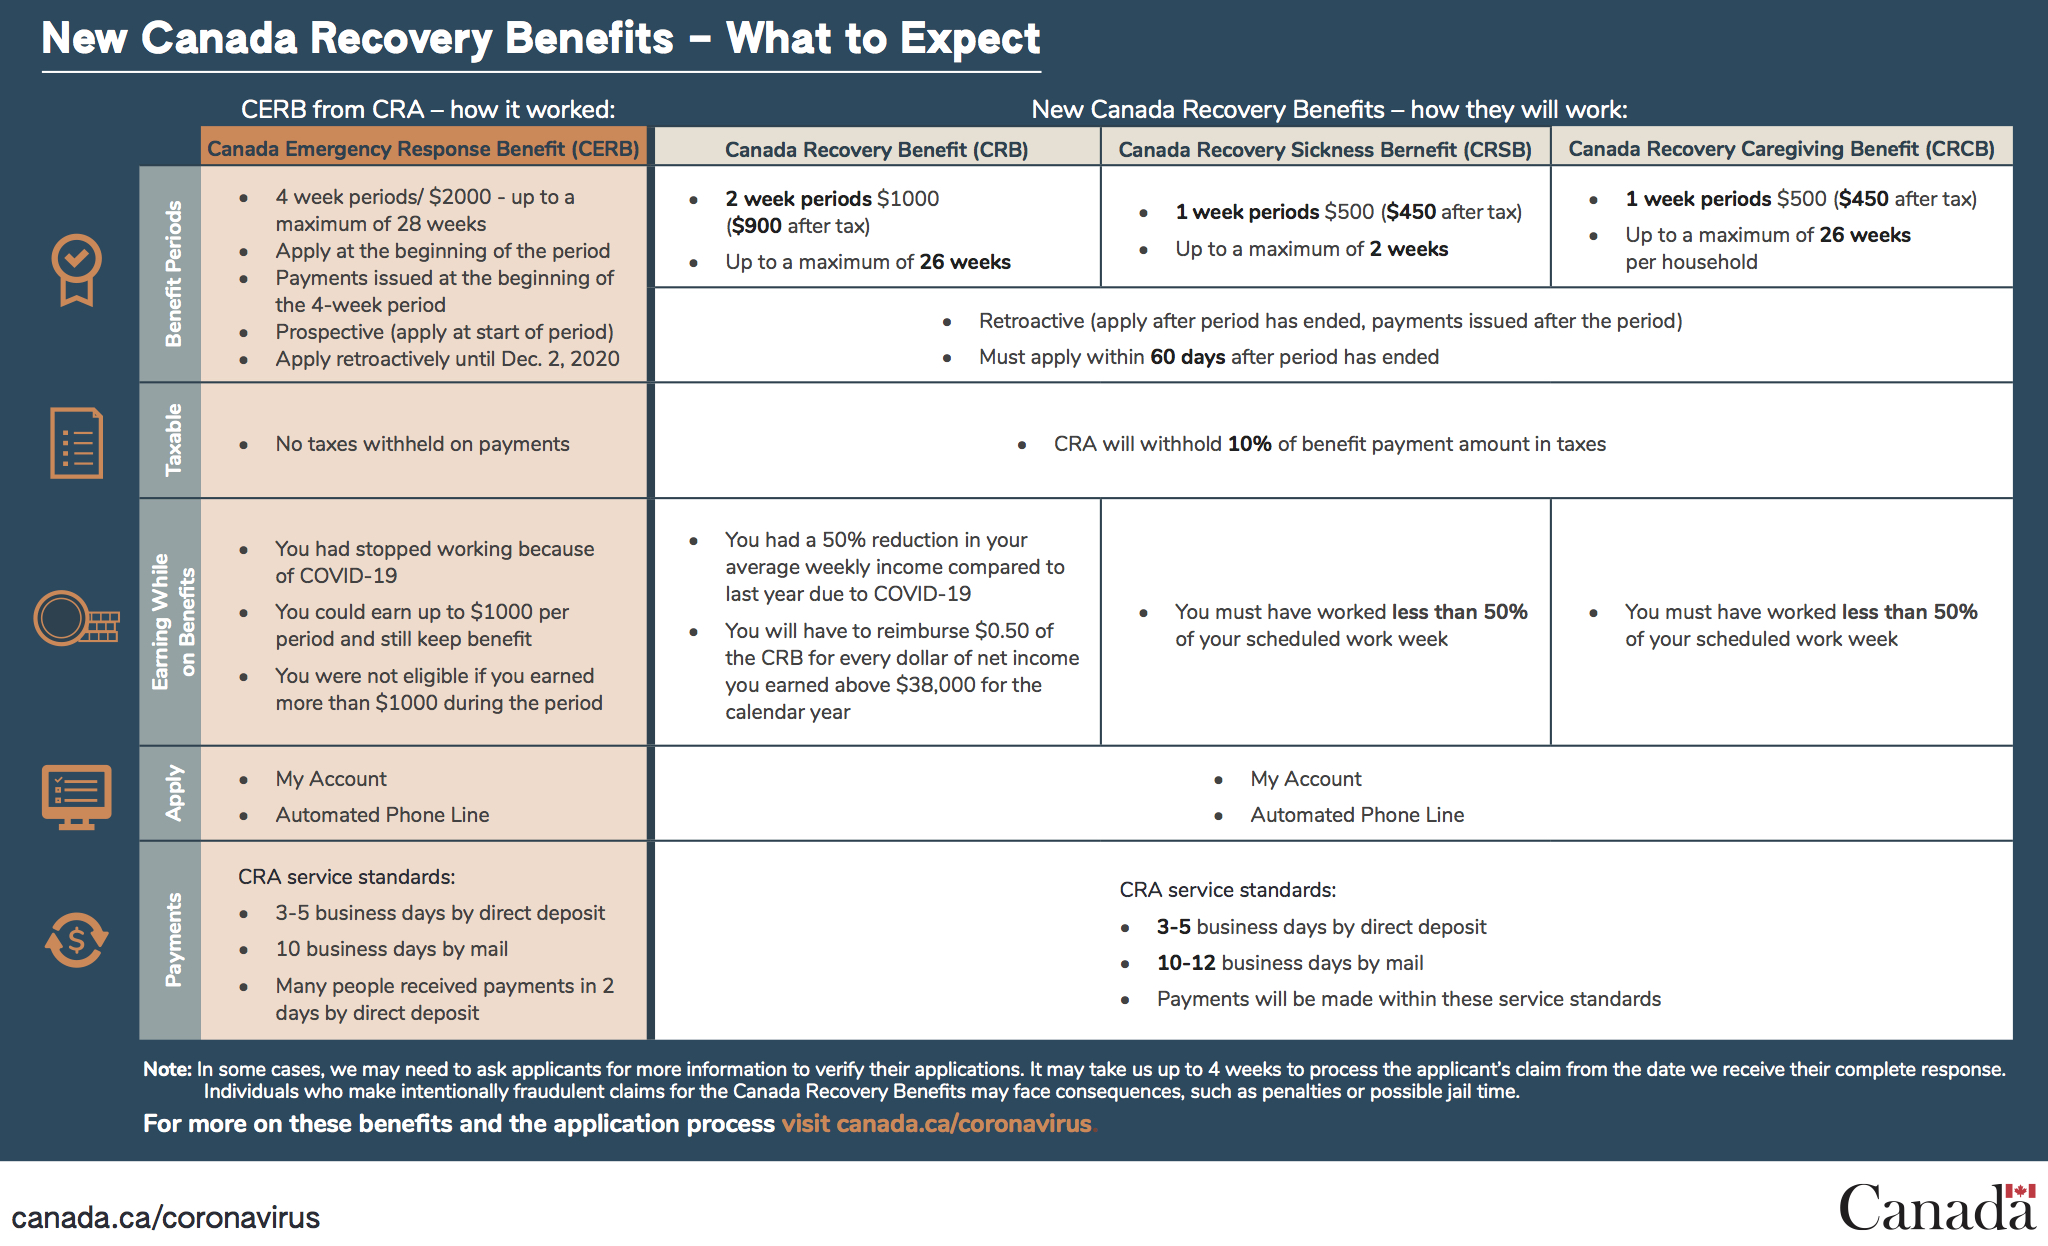 New Benefits - What to Expect